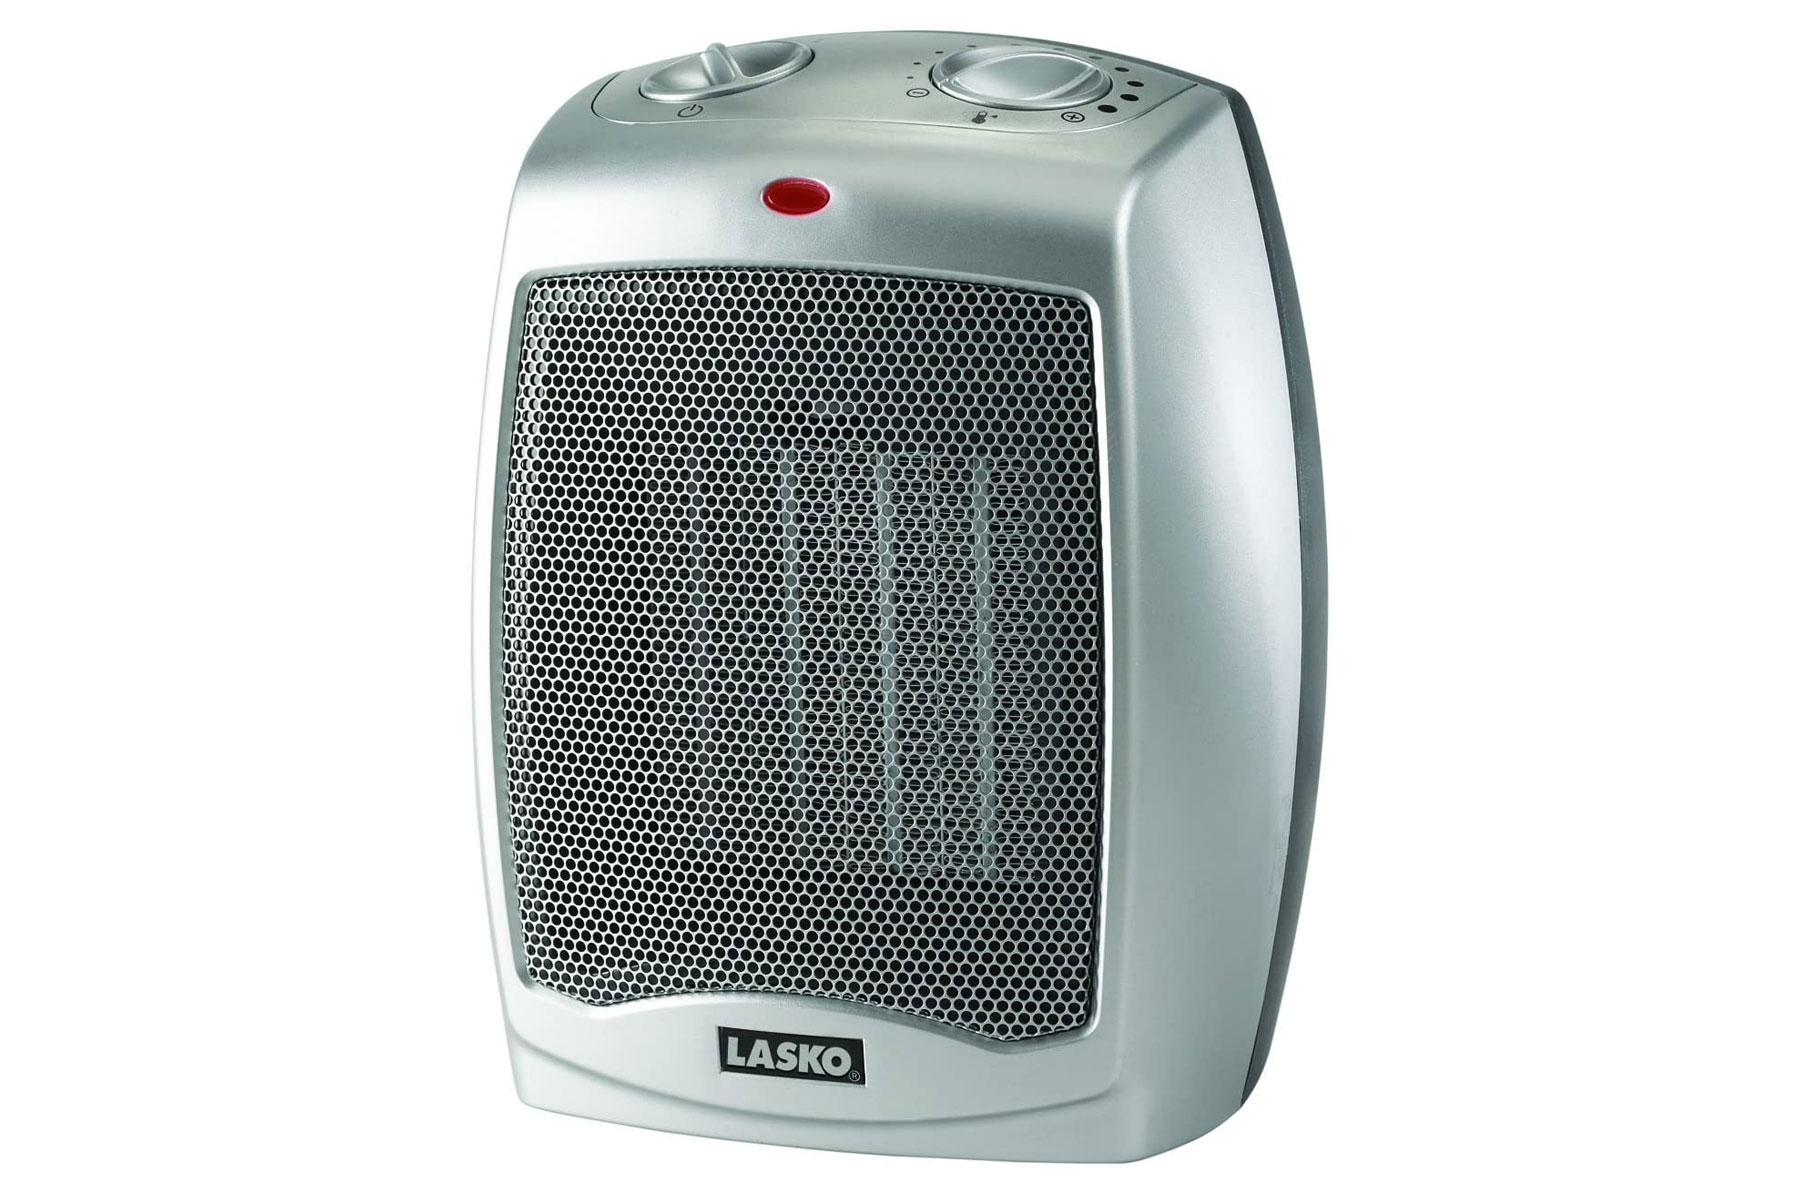 Silver space heater